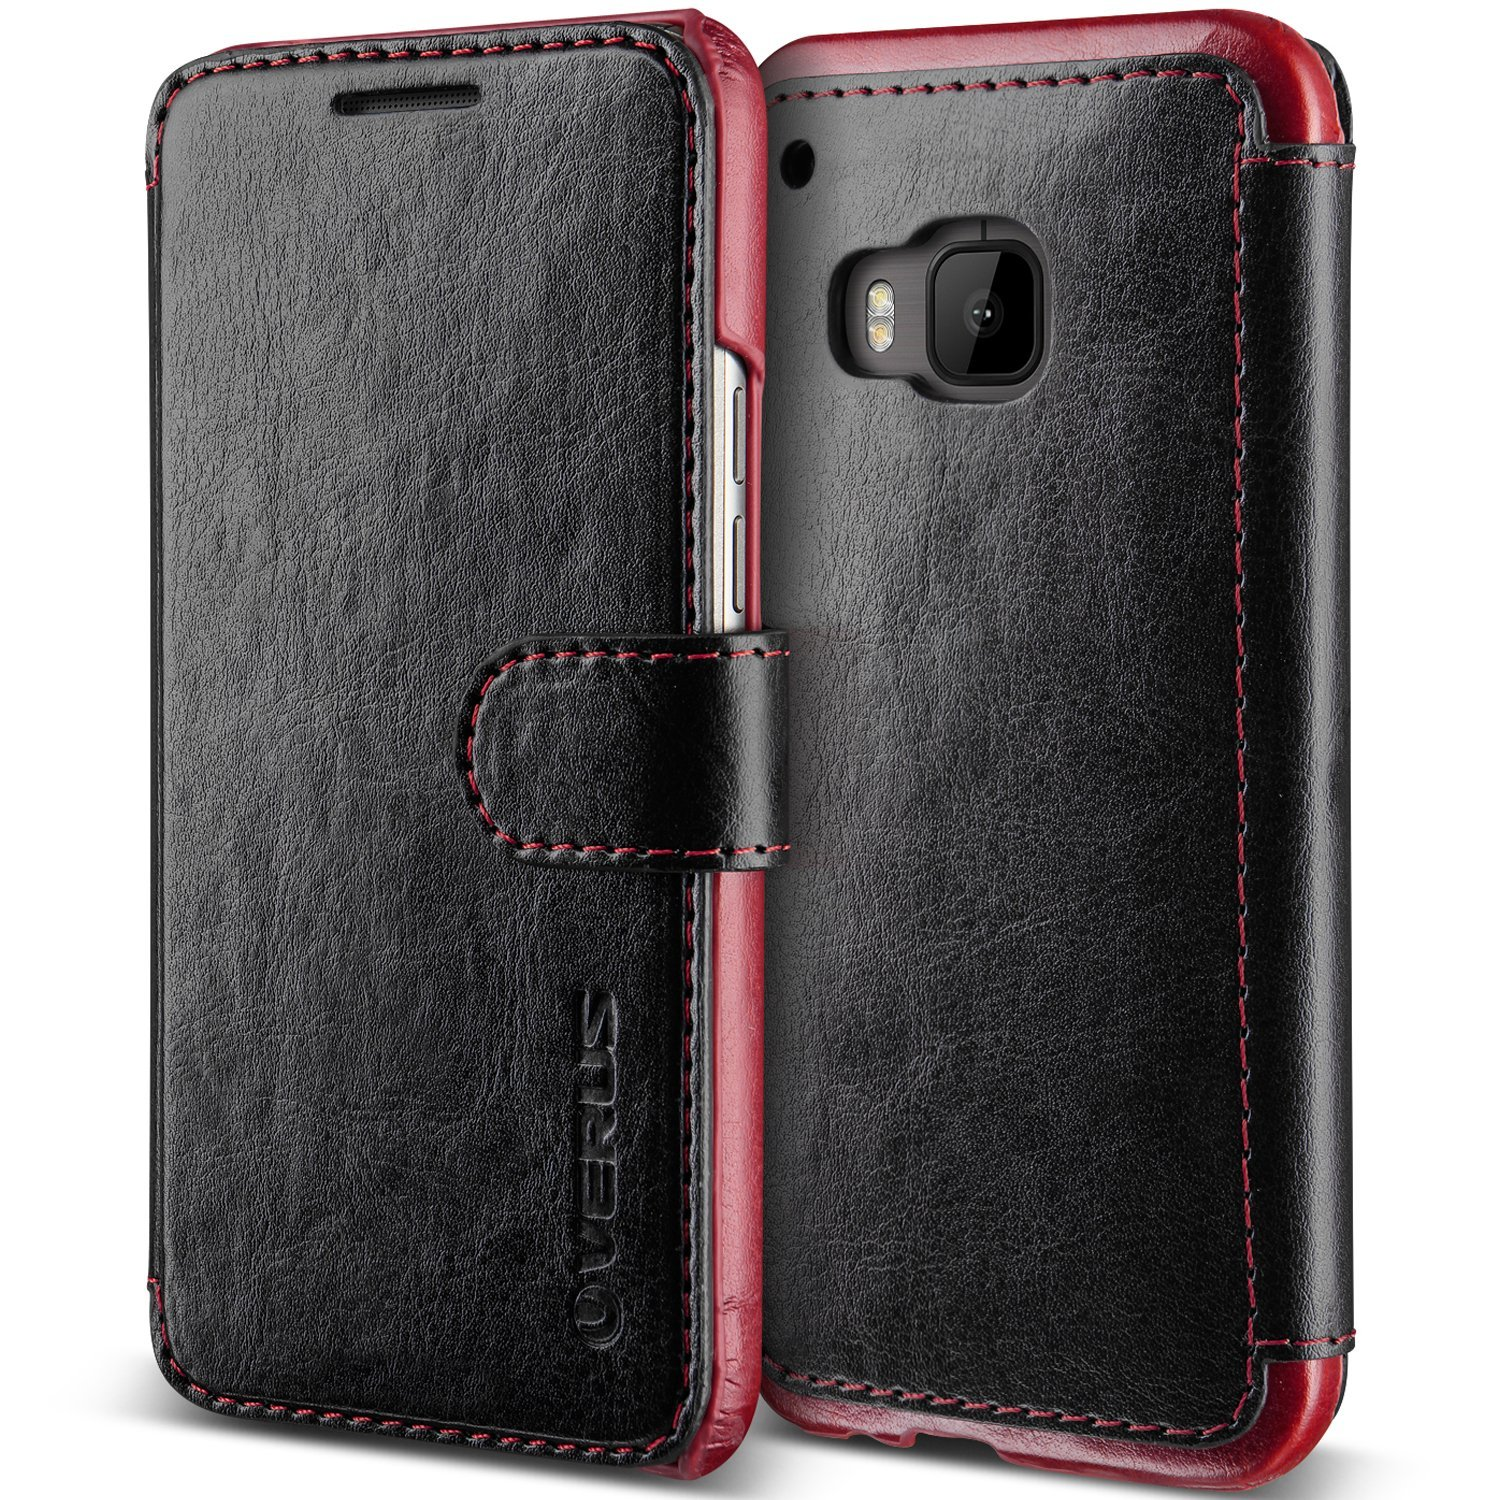 one m9 cases, htc one m9 cases, m9 wallet case